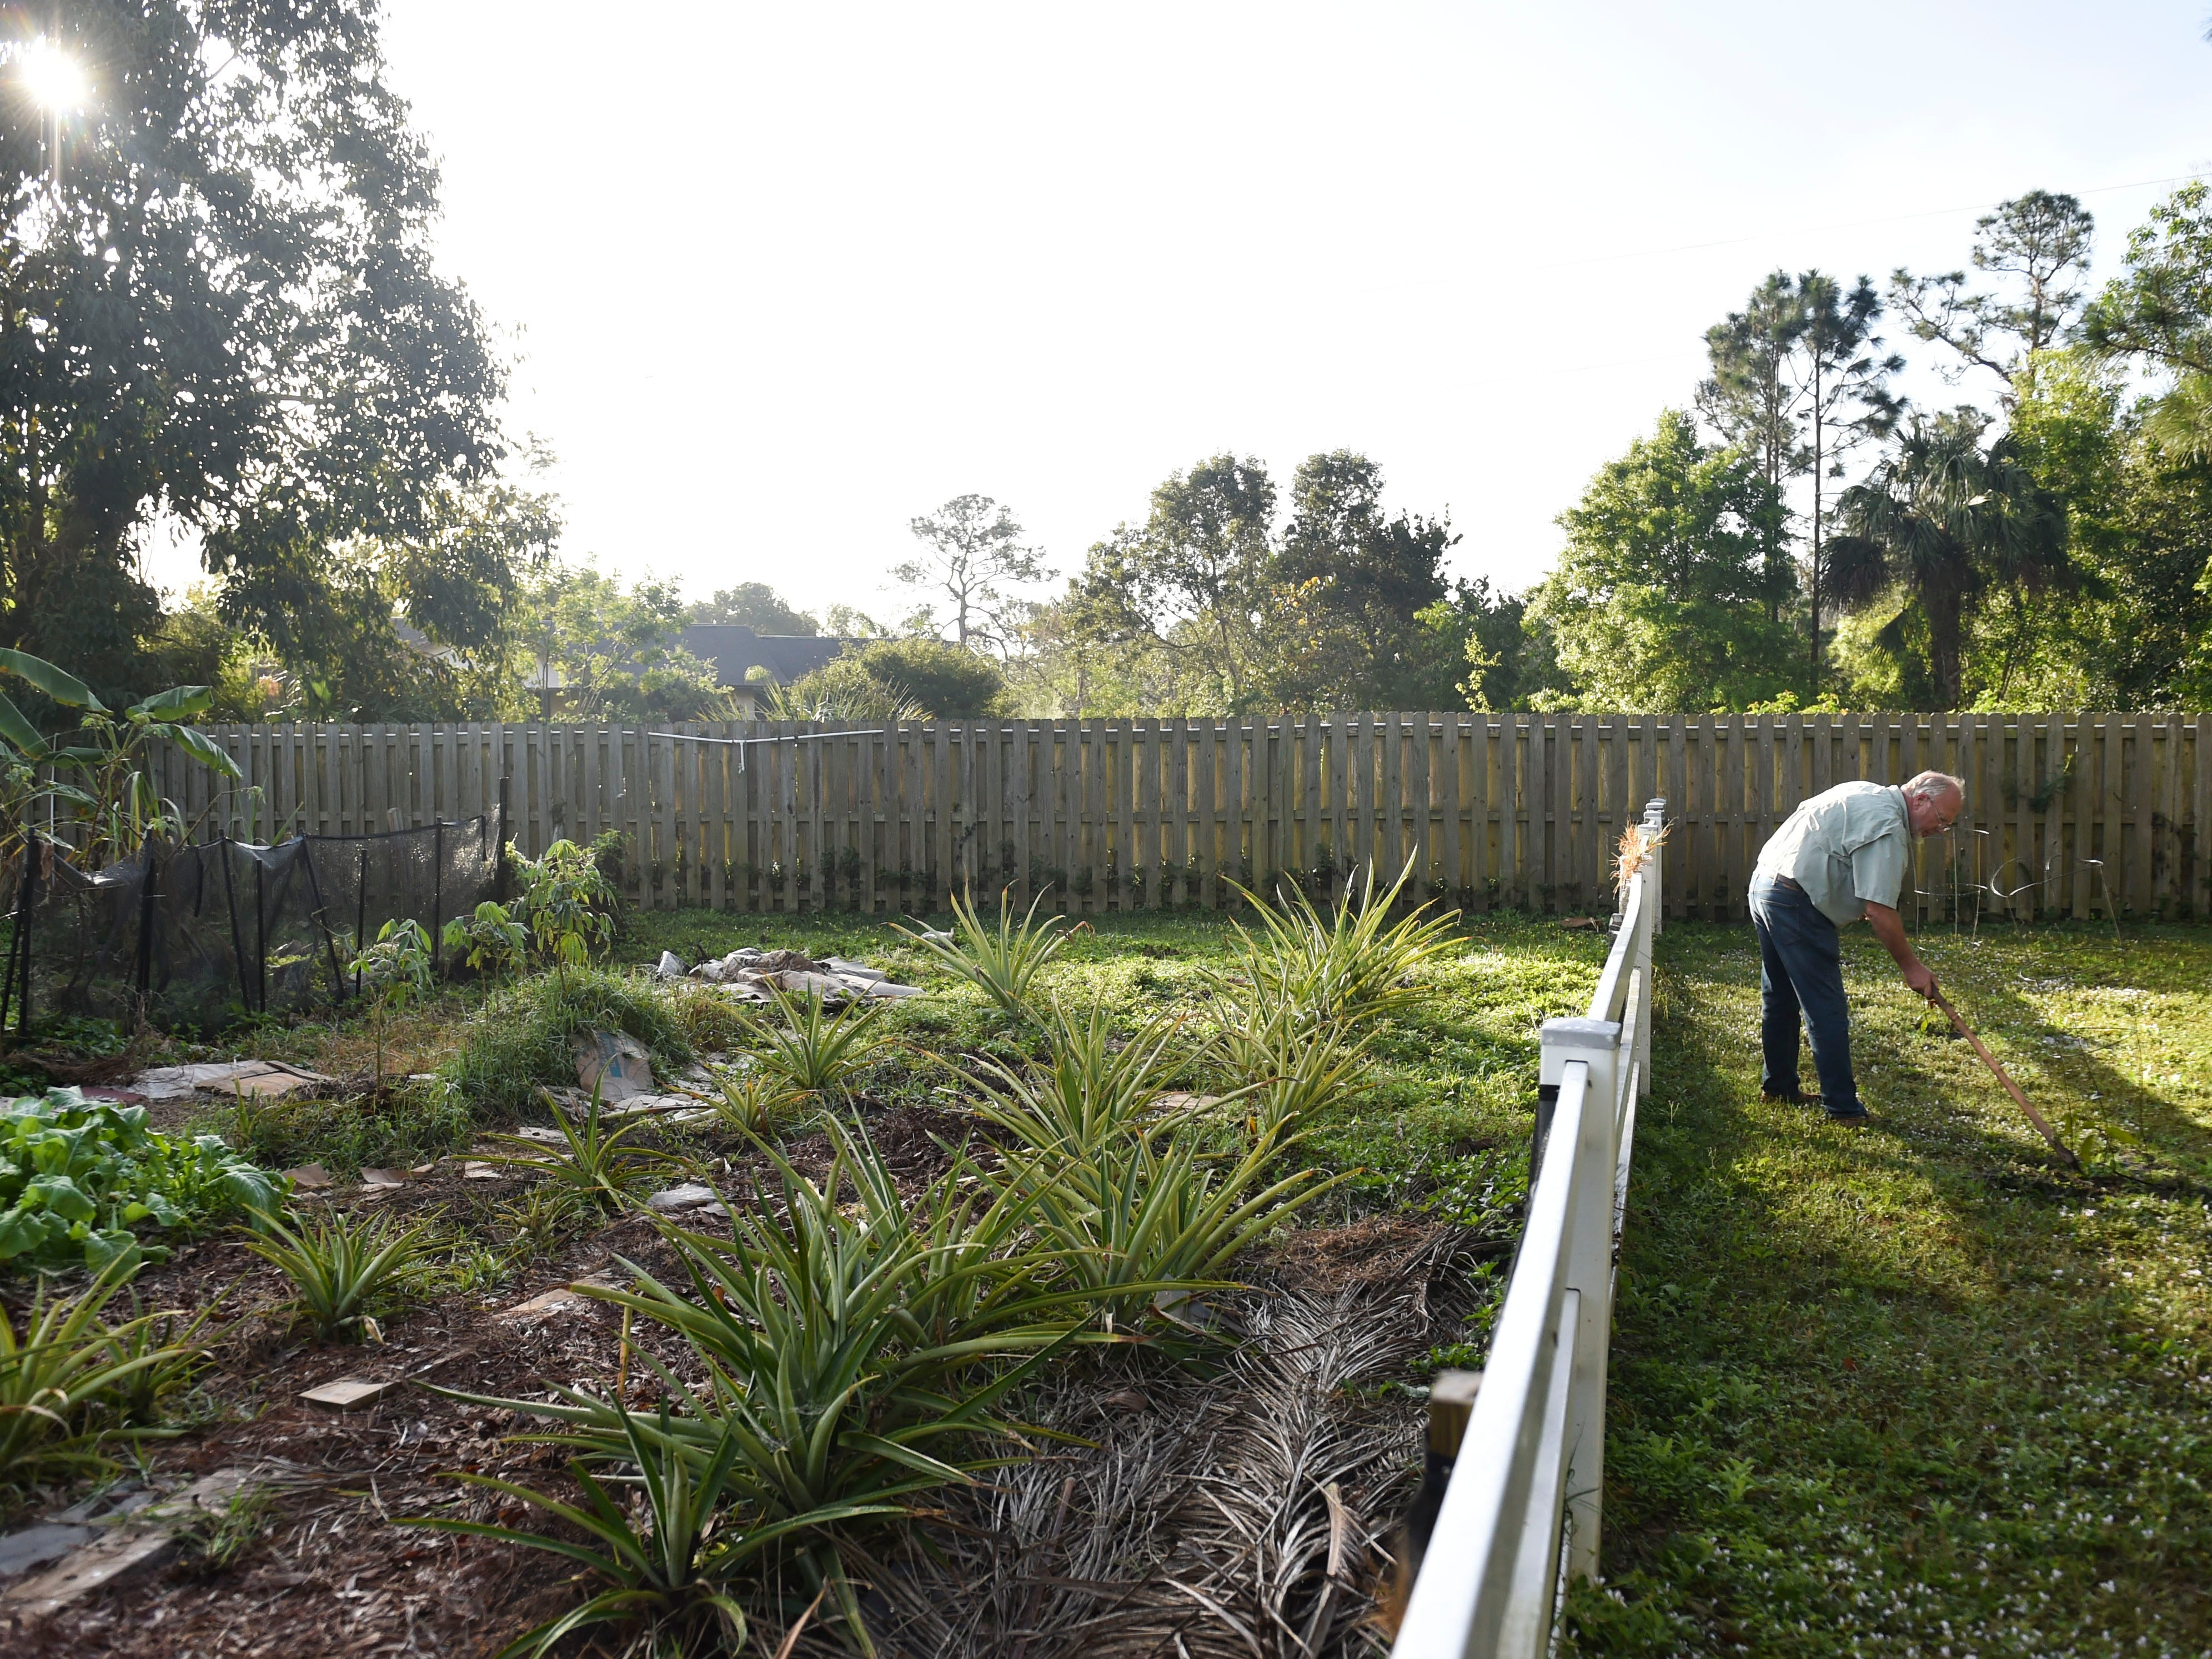 """Chris Englund's history with Love and Hope in Action began five years ago when he offered them a banana tree and was asked to plant a garden. Englund, seen Feb. 13, 2018 at LAHIA in Stuart  has been contributing to the faith-based non-profit and the East Stuart community ever since, gifting excess produce to his former Meals on Wheels clients. """"There's a great need in our society to be out there building some bridges and connections,"""" Englund said."""